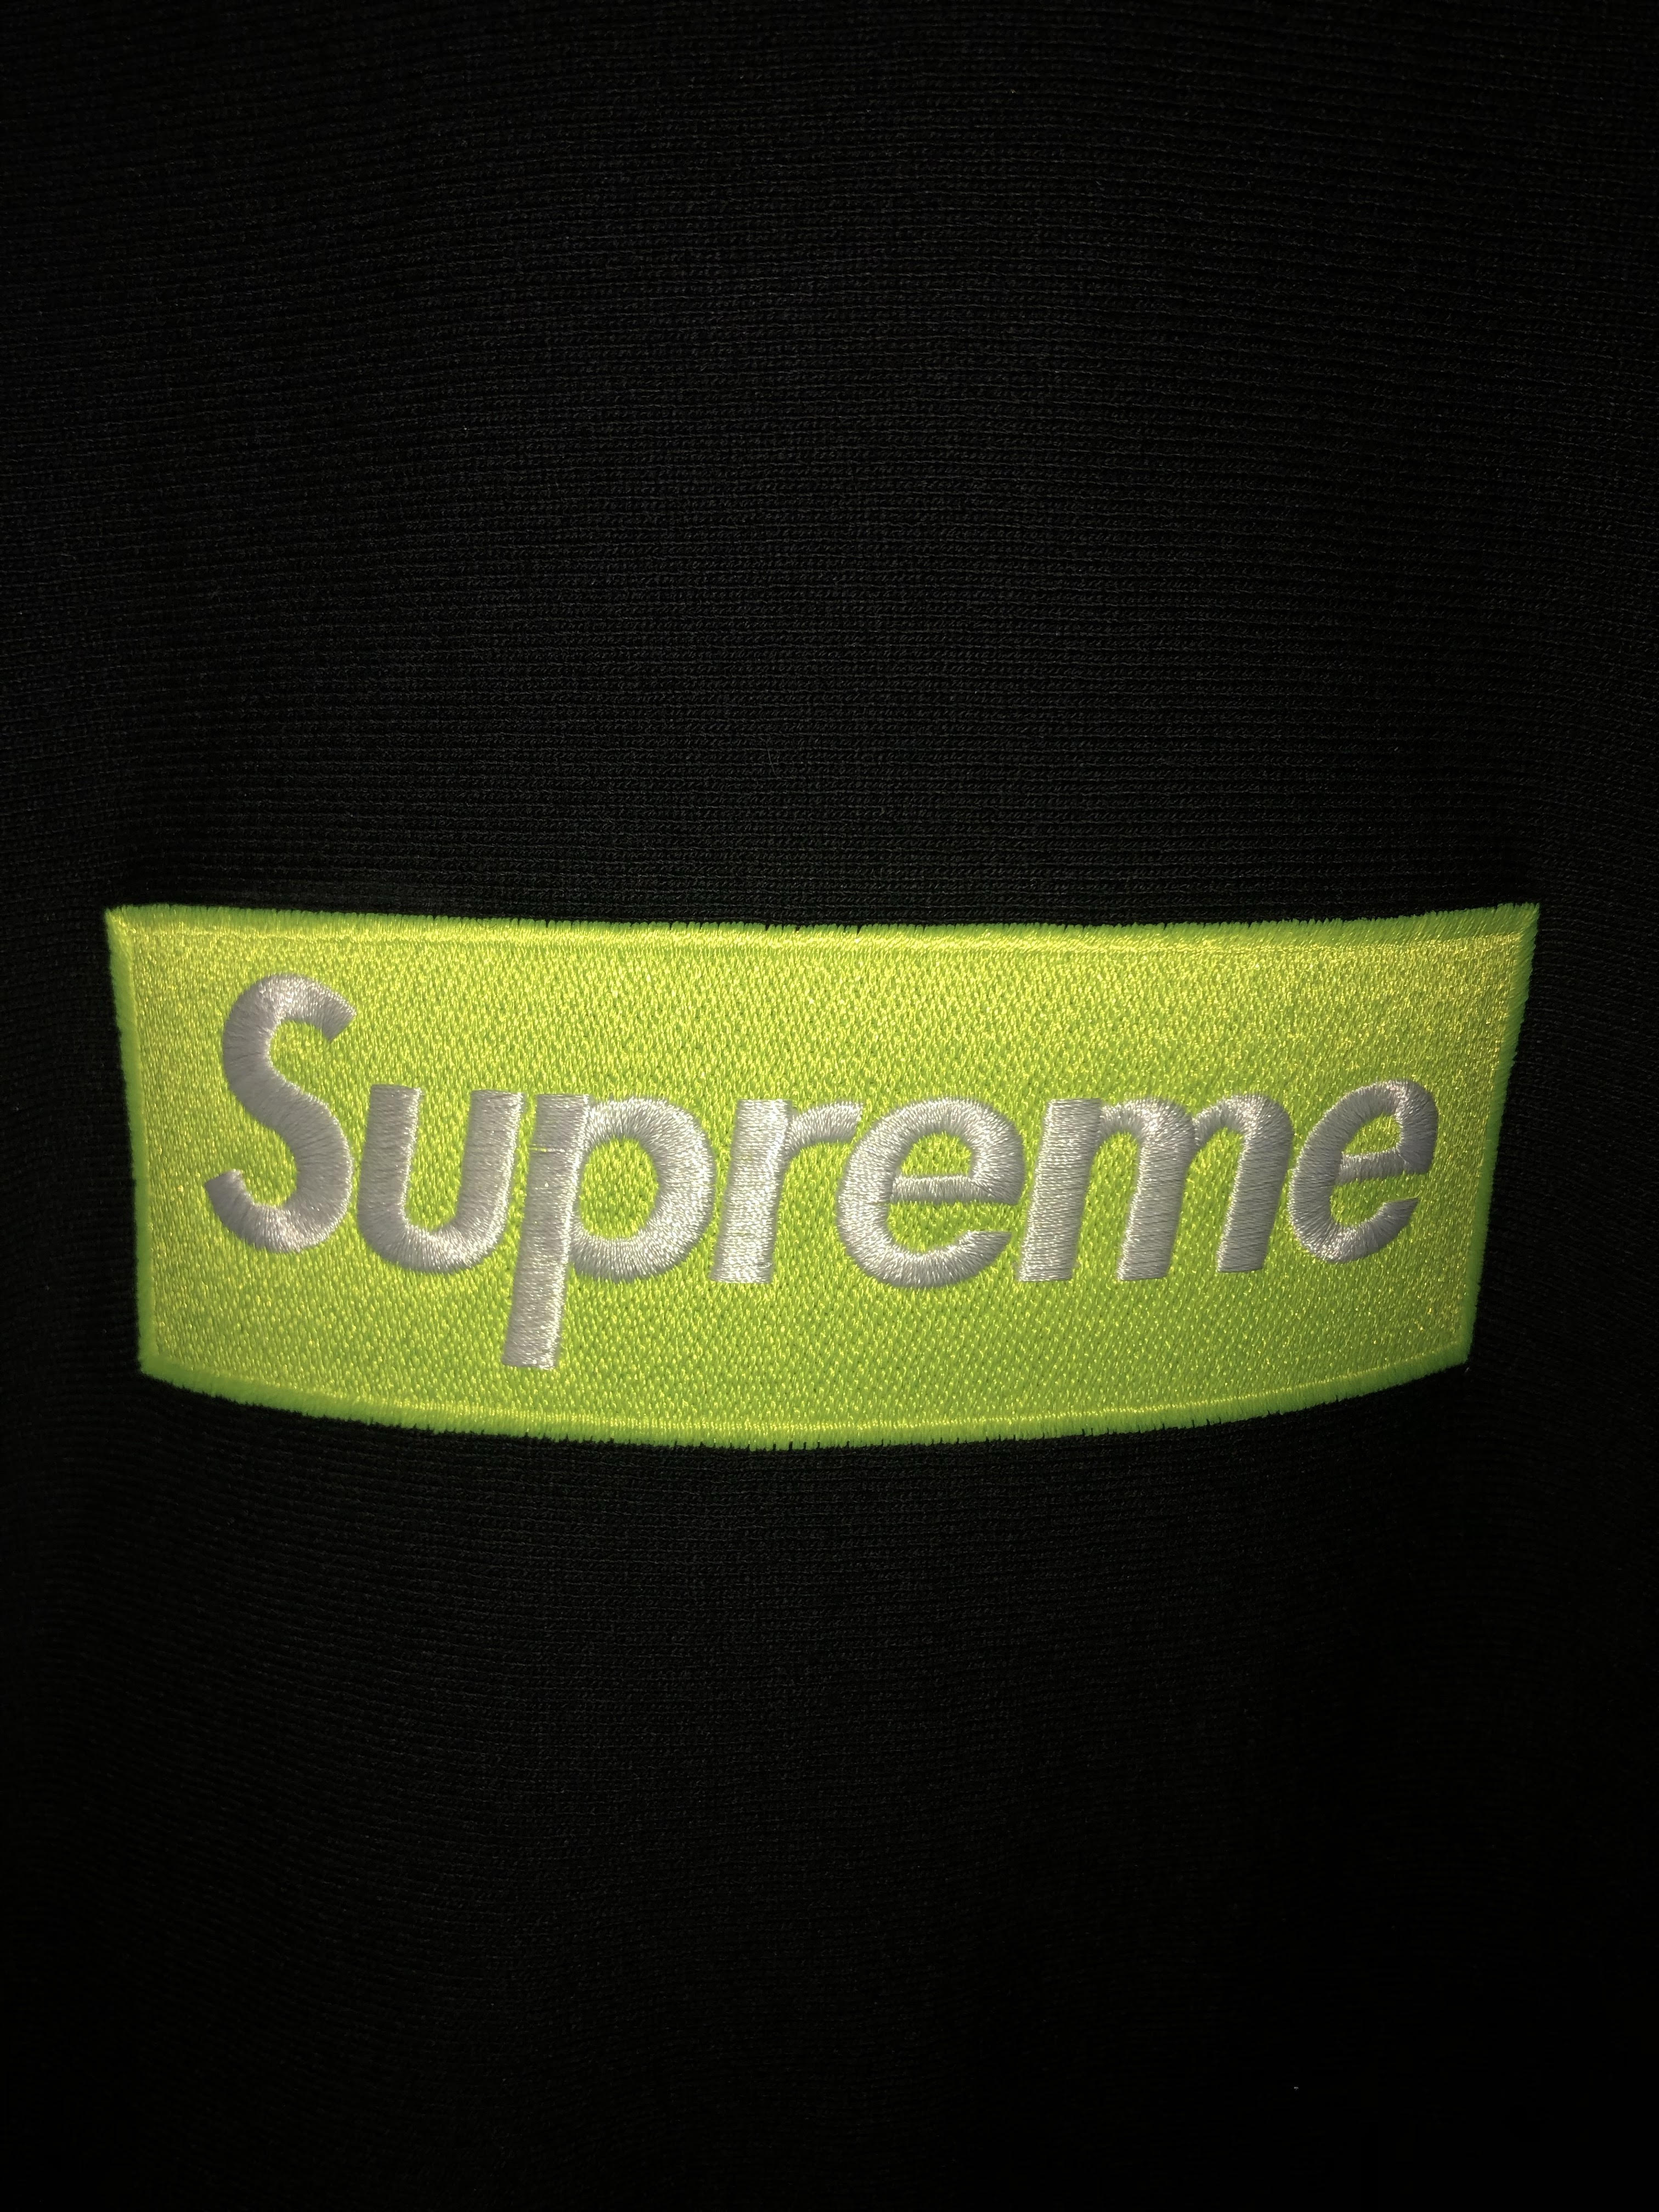 1f81760094ed Supreme Black Lime Box Logo Hoodie FW17 Size xl - Sweatshirts   Hoodies for  Sale - Grailed